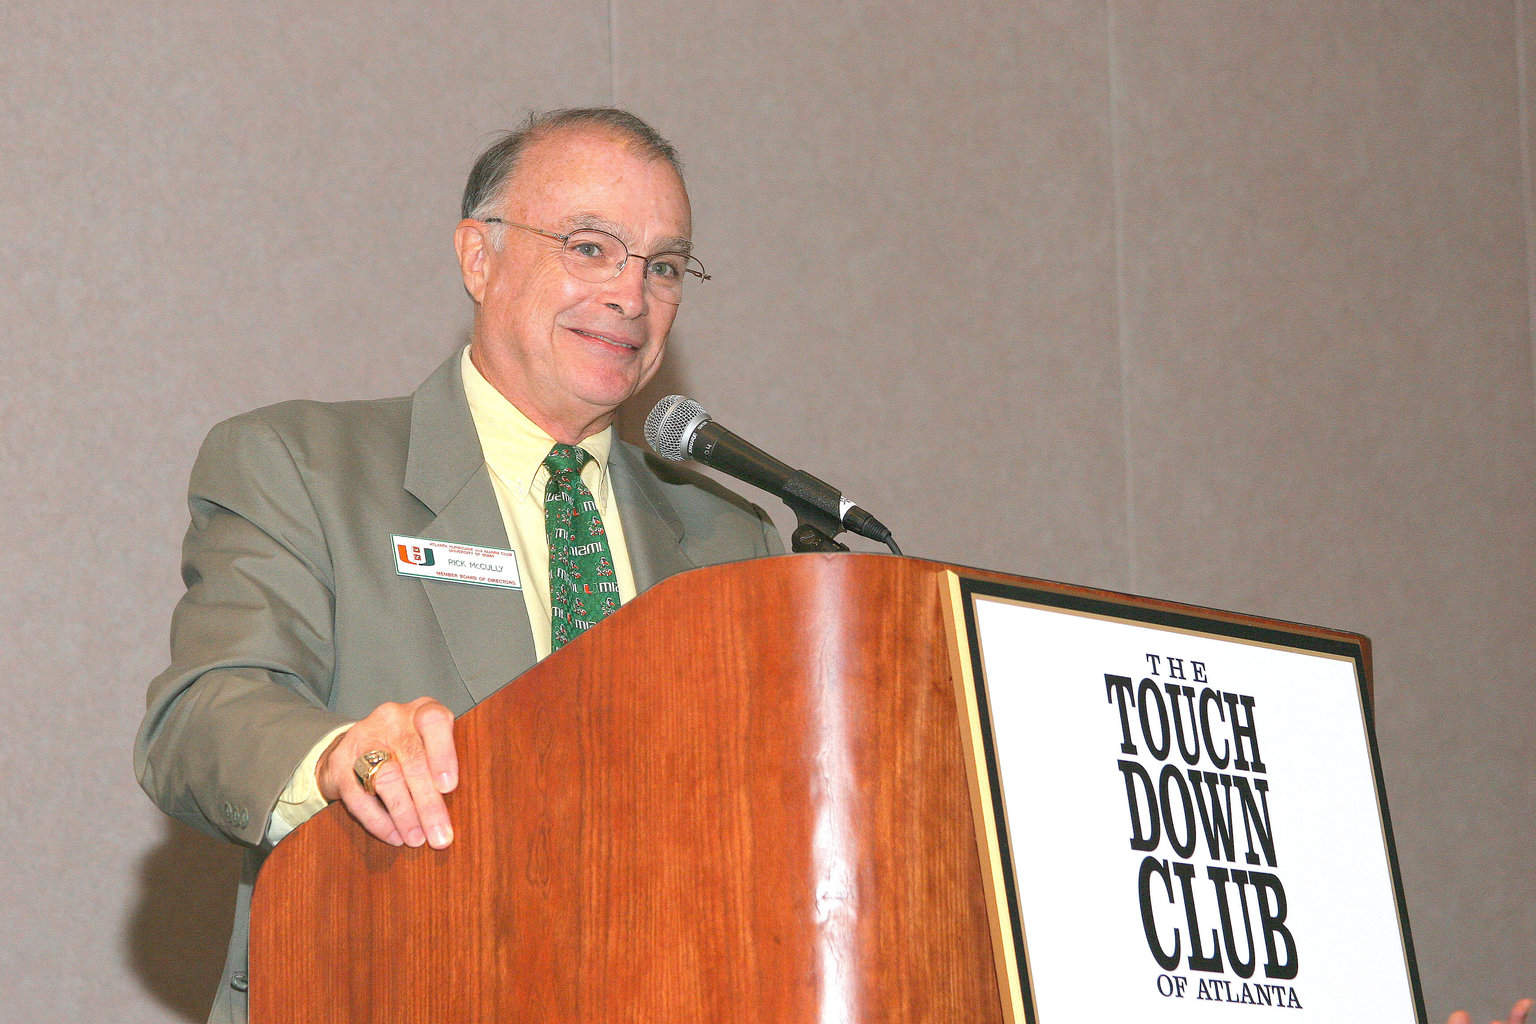 10-4-04 TCA member Rick McCully introducing Larry Coker